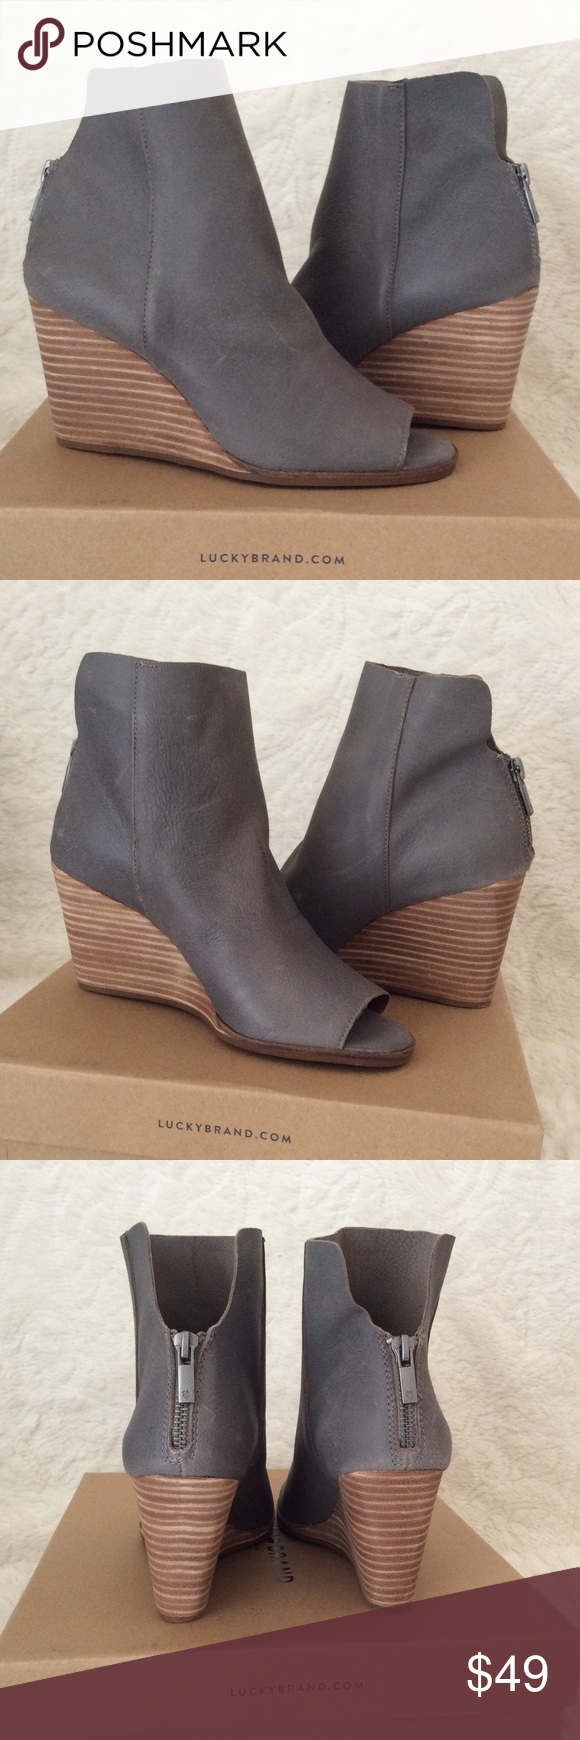 2d99ca3a308 💙LUCKY BRAND URBI OPEN TOE BOOTIES💙 Steel grey booties perfect for fall  🍁 Great